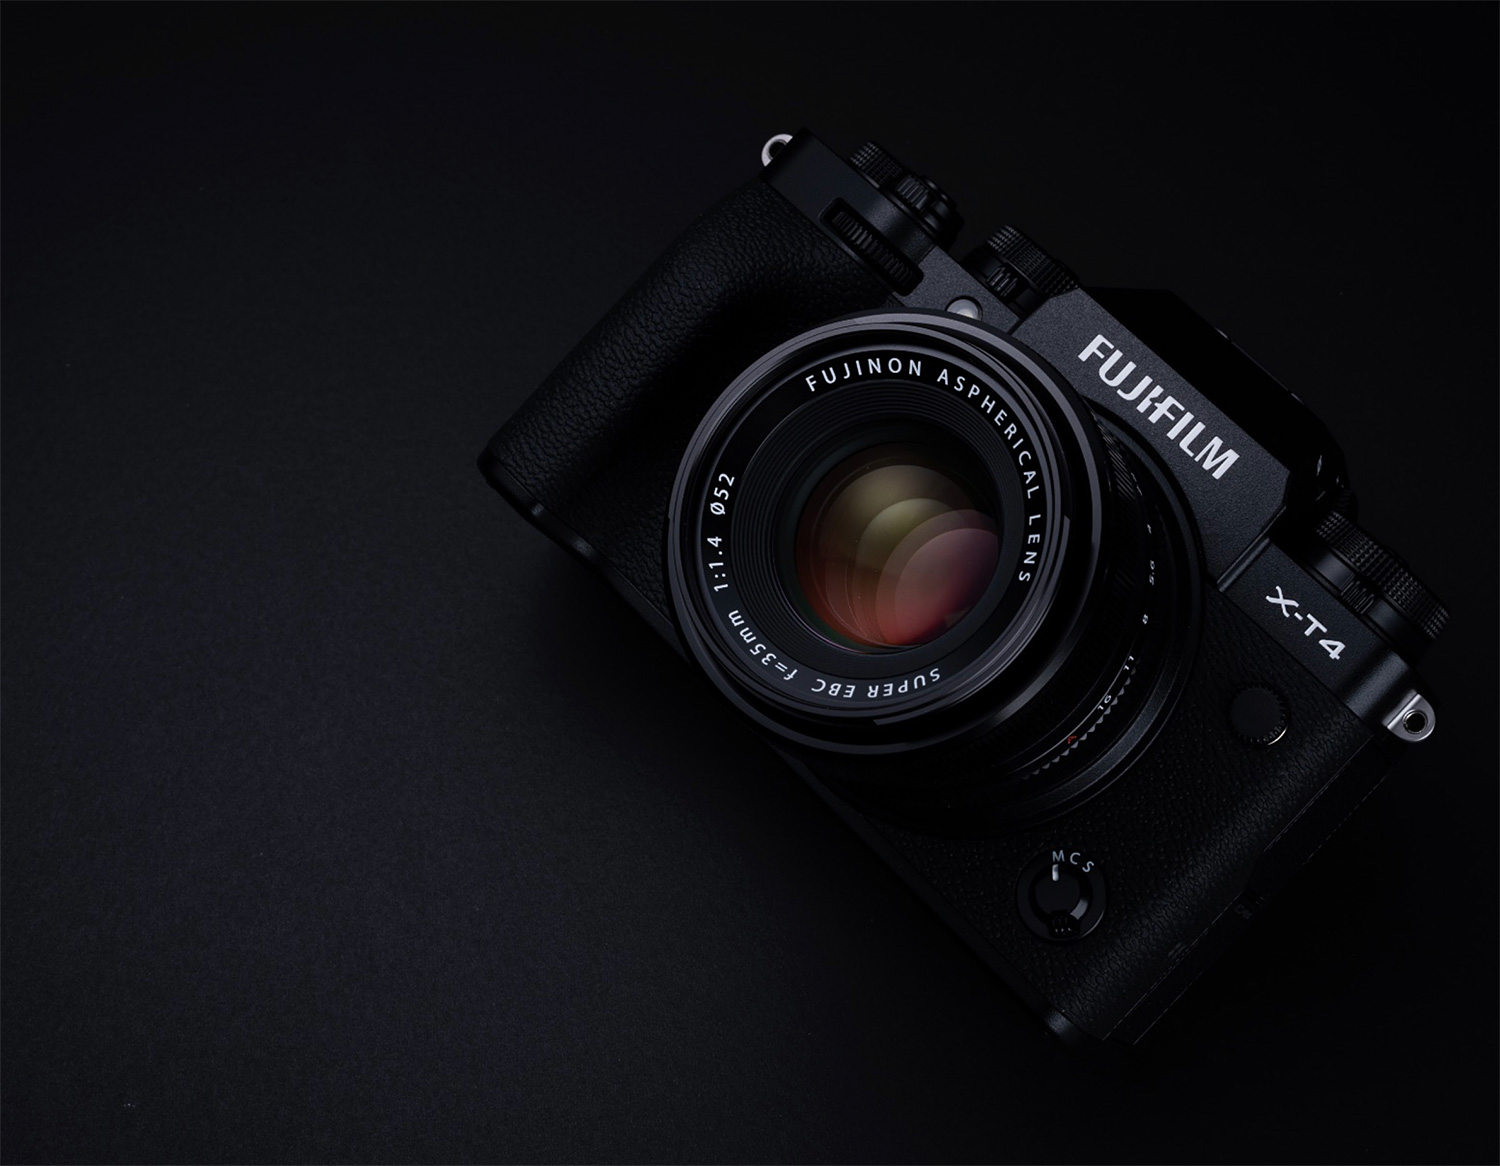 Fujifilm's Mirrorless X-T4 Will Give You A Steady Shot at werd.com